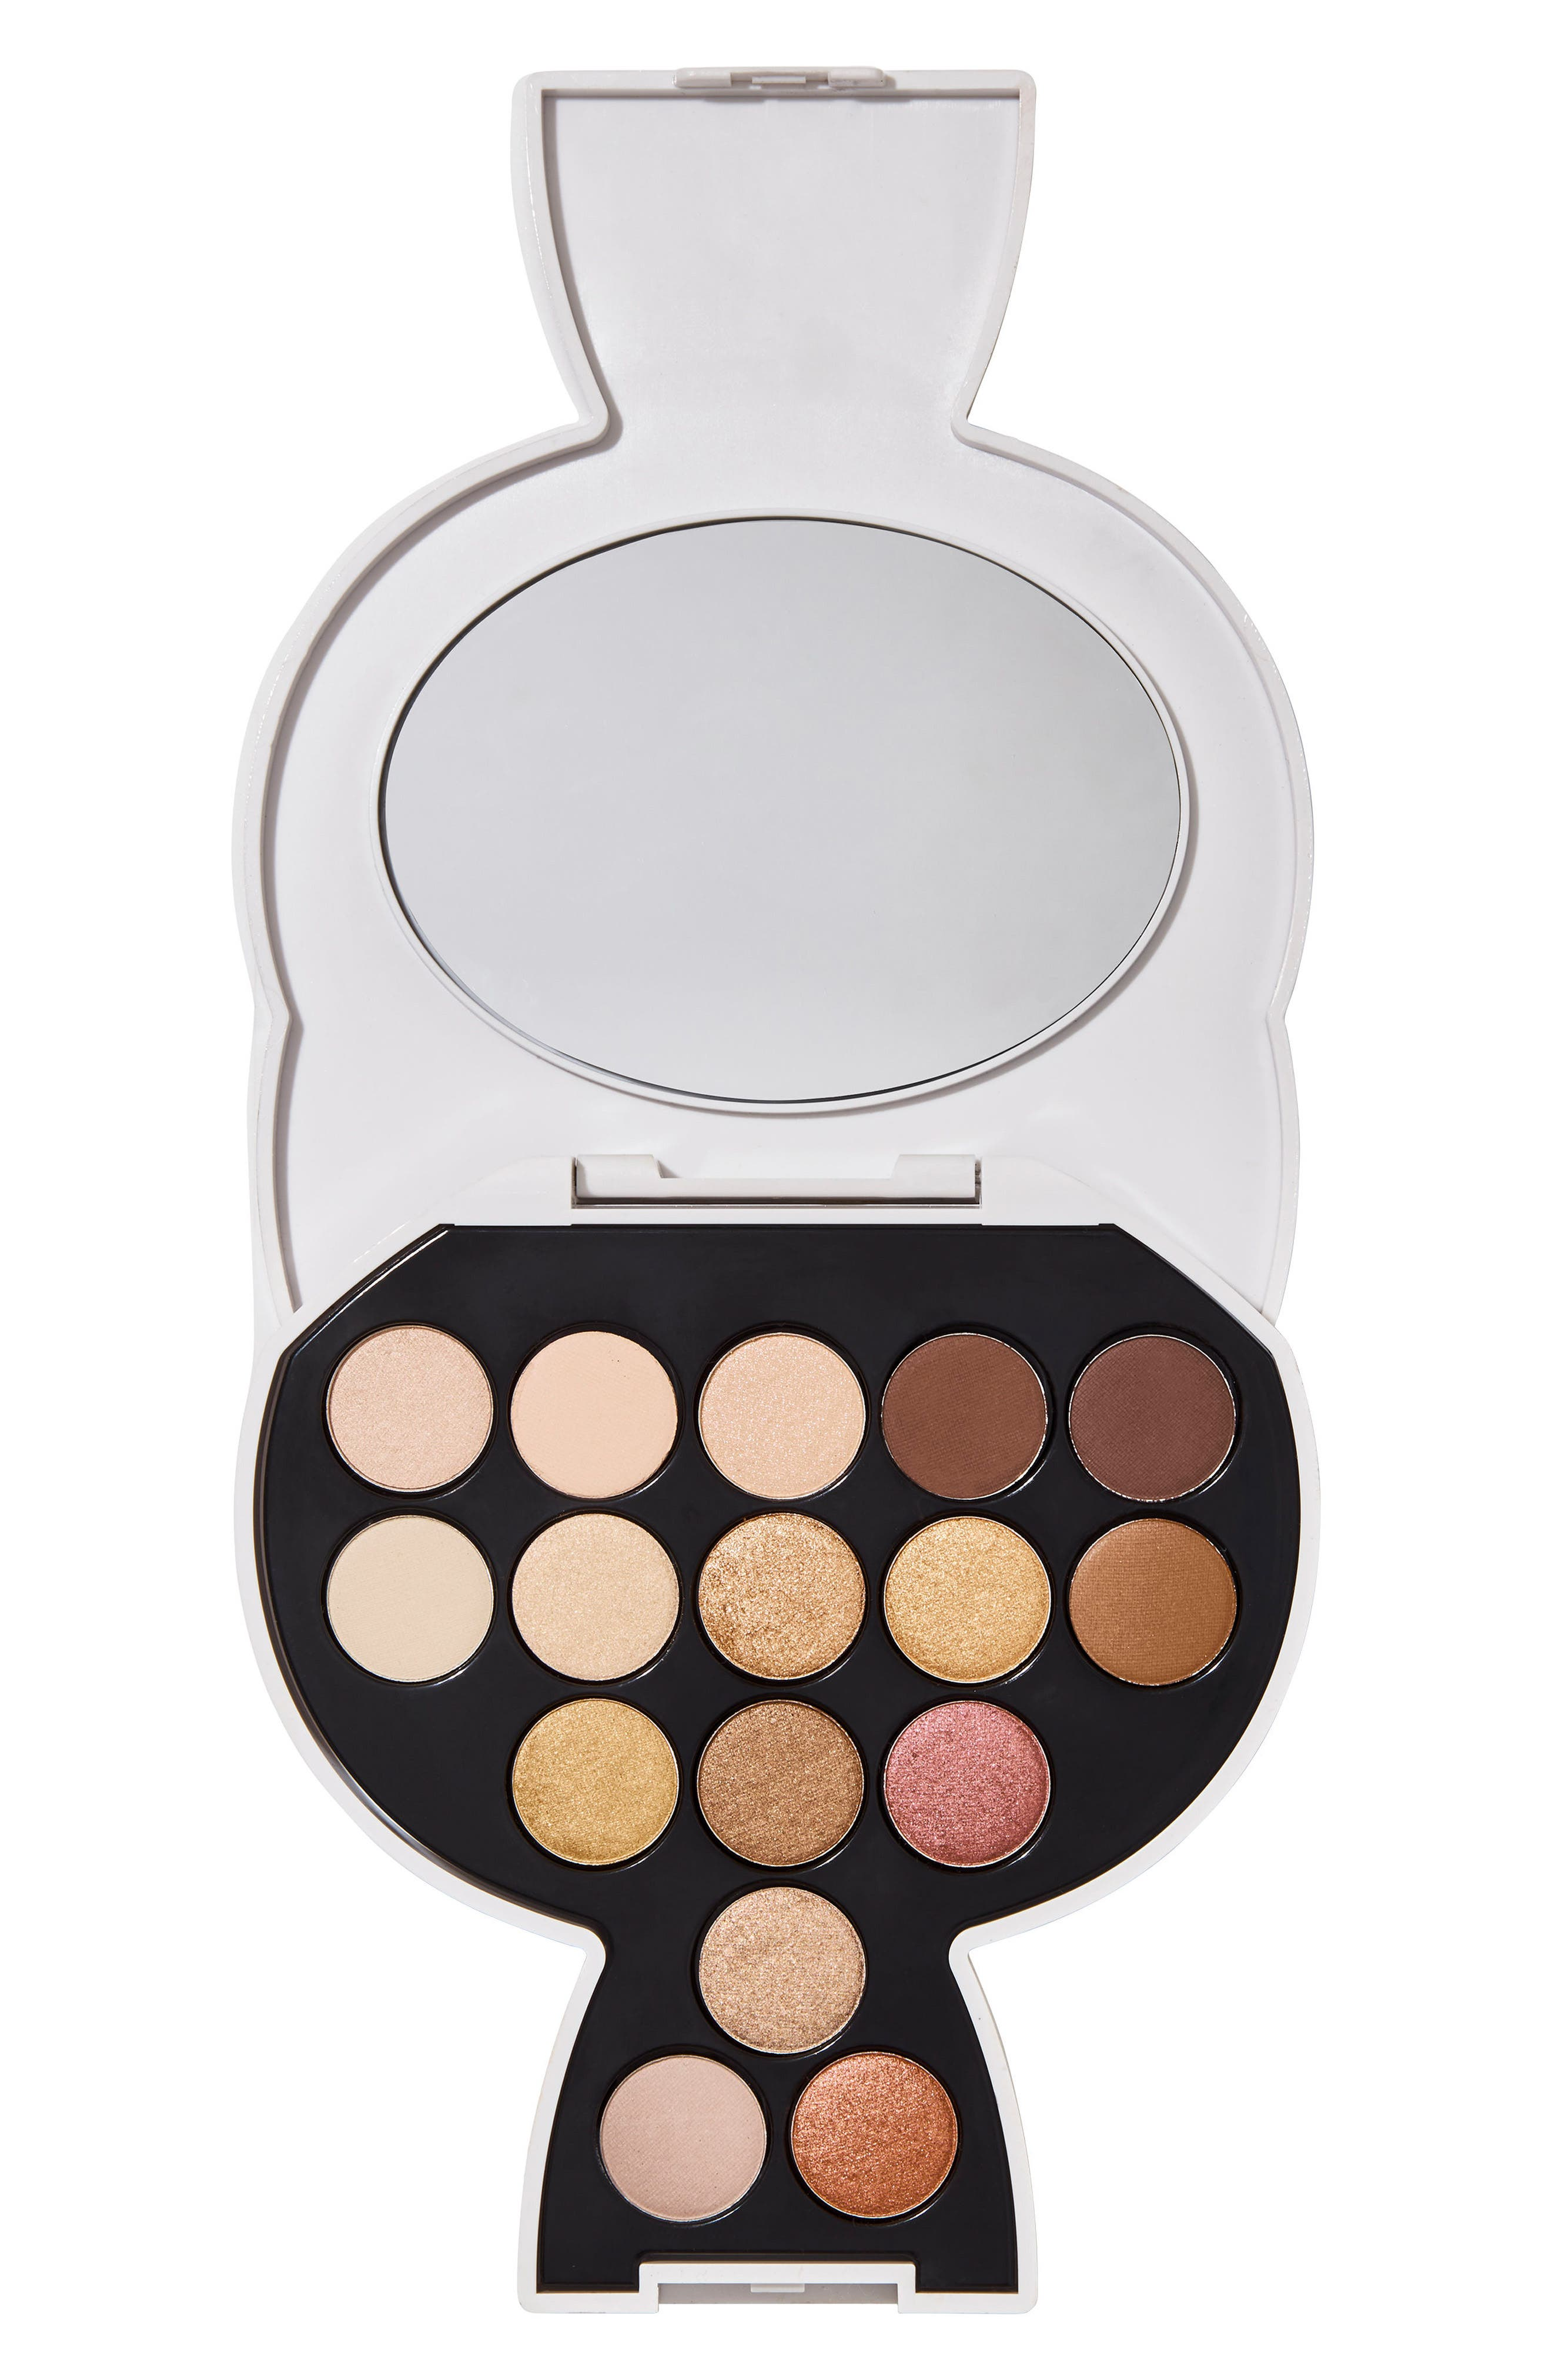 KARL LAGERFELD + MODELCO Kiss Me Karl Choupette Eyeshadow Palette,                             Main thumbnail 1, color,                             WARM/NUDE